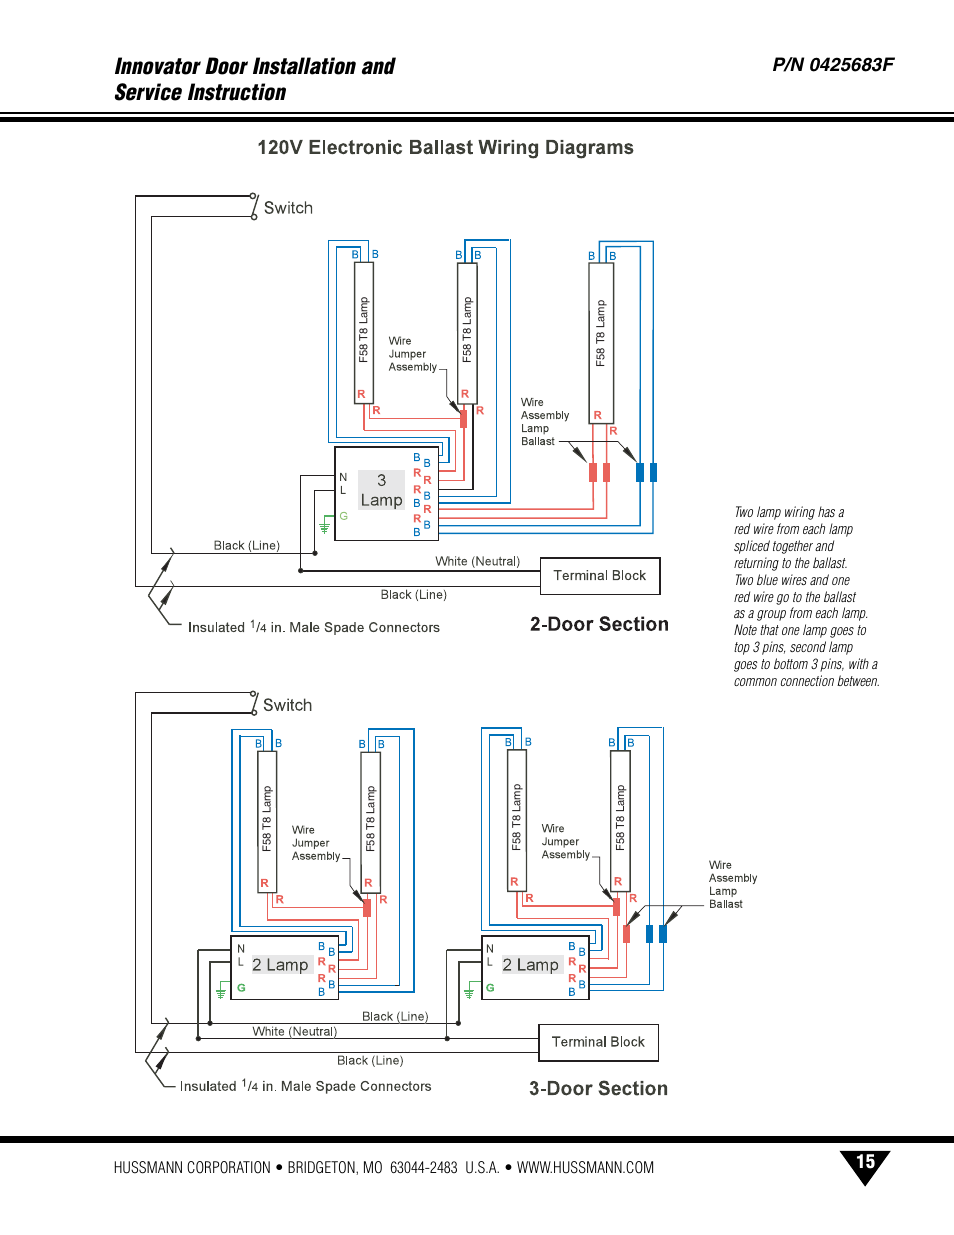 Hid Electronic Ballast Circuit Diagram Manual Guide